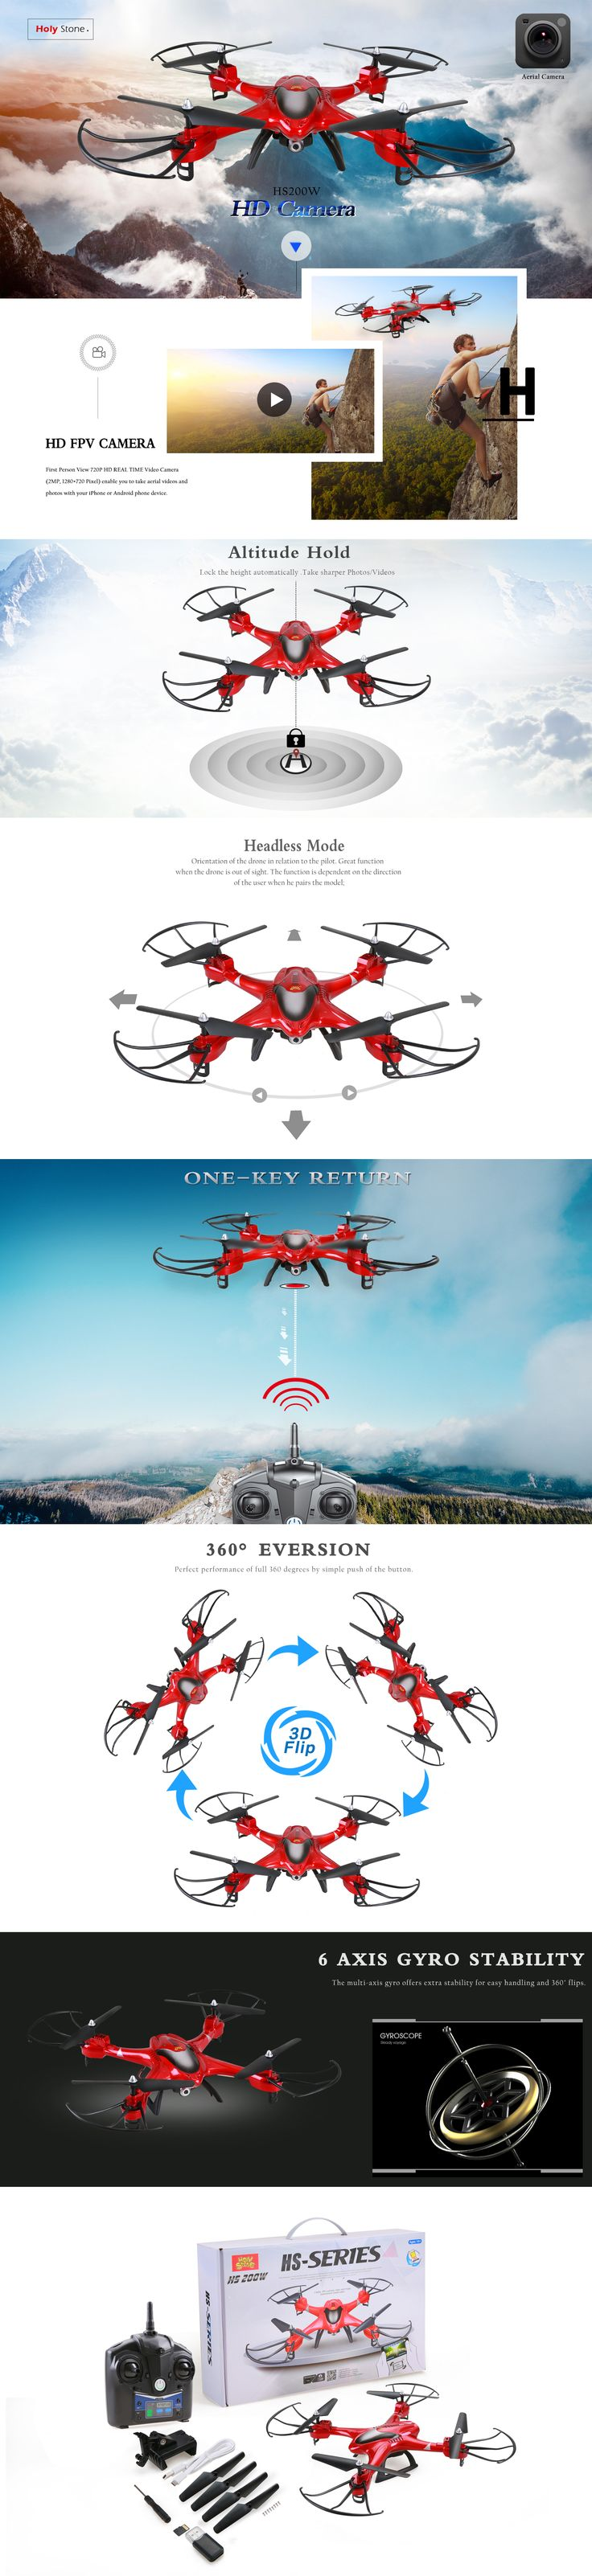 Holy Stone HS200W FPV Drone with 720P HD Live Video Wifi Camera 2.4GHz 4CH 6-Axis Gyro RC Quadcopter with Altitude Hold, Gravity Sensor and Headless Mode Function RTF, Color Red - Holy Stone|Buy Drones & Quadcopters for sale Online|Best RC Drone Helicopter with Camera